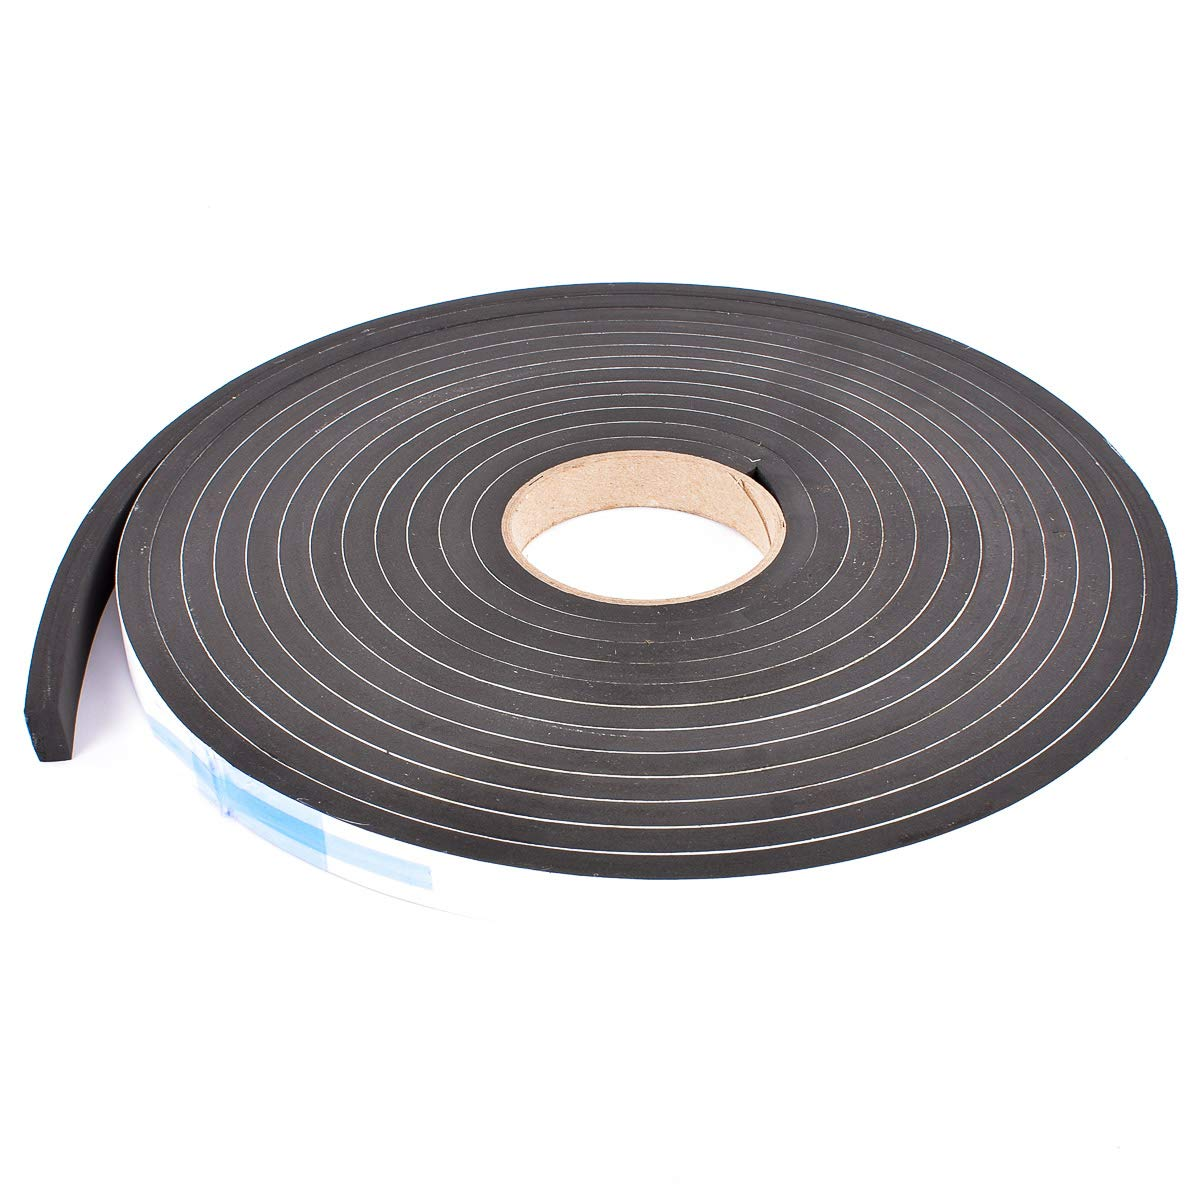 Sponge Minneapolis Mall Neoprene Max 65% OFF Stripping W Adhesive 3 8in Thick Wide 4in X